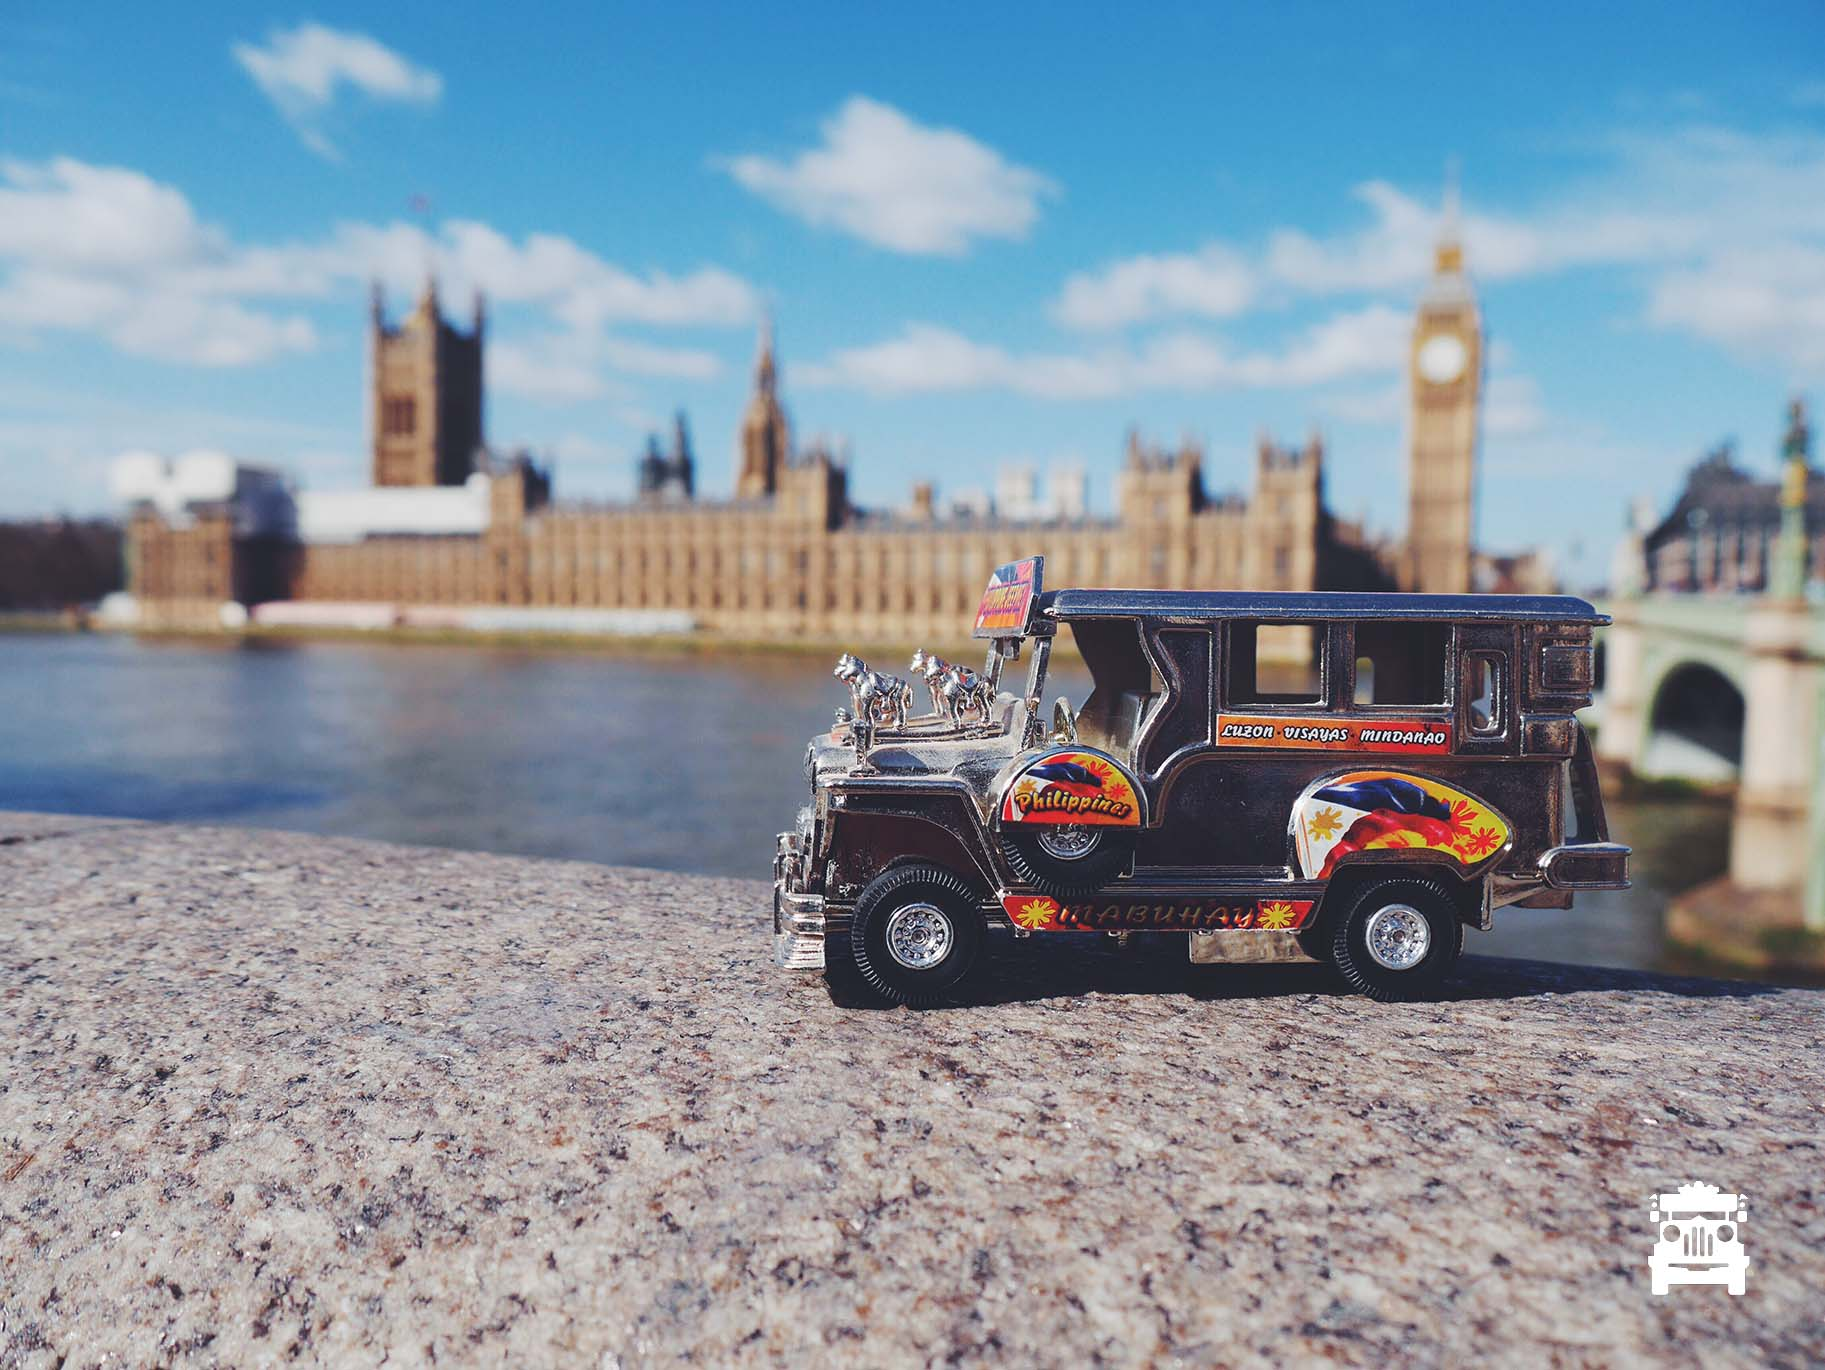 The jeep made it to Westminster Palace